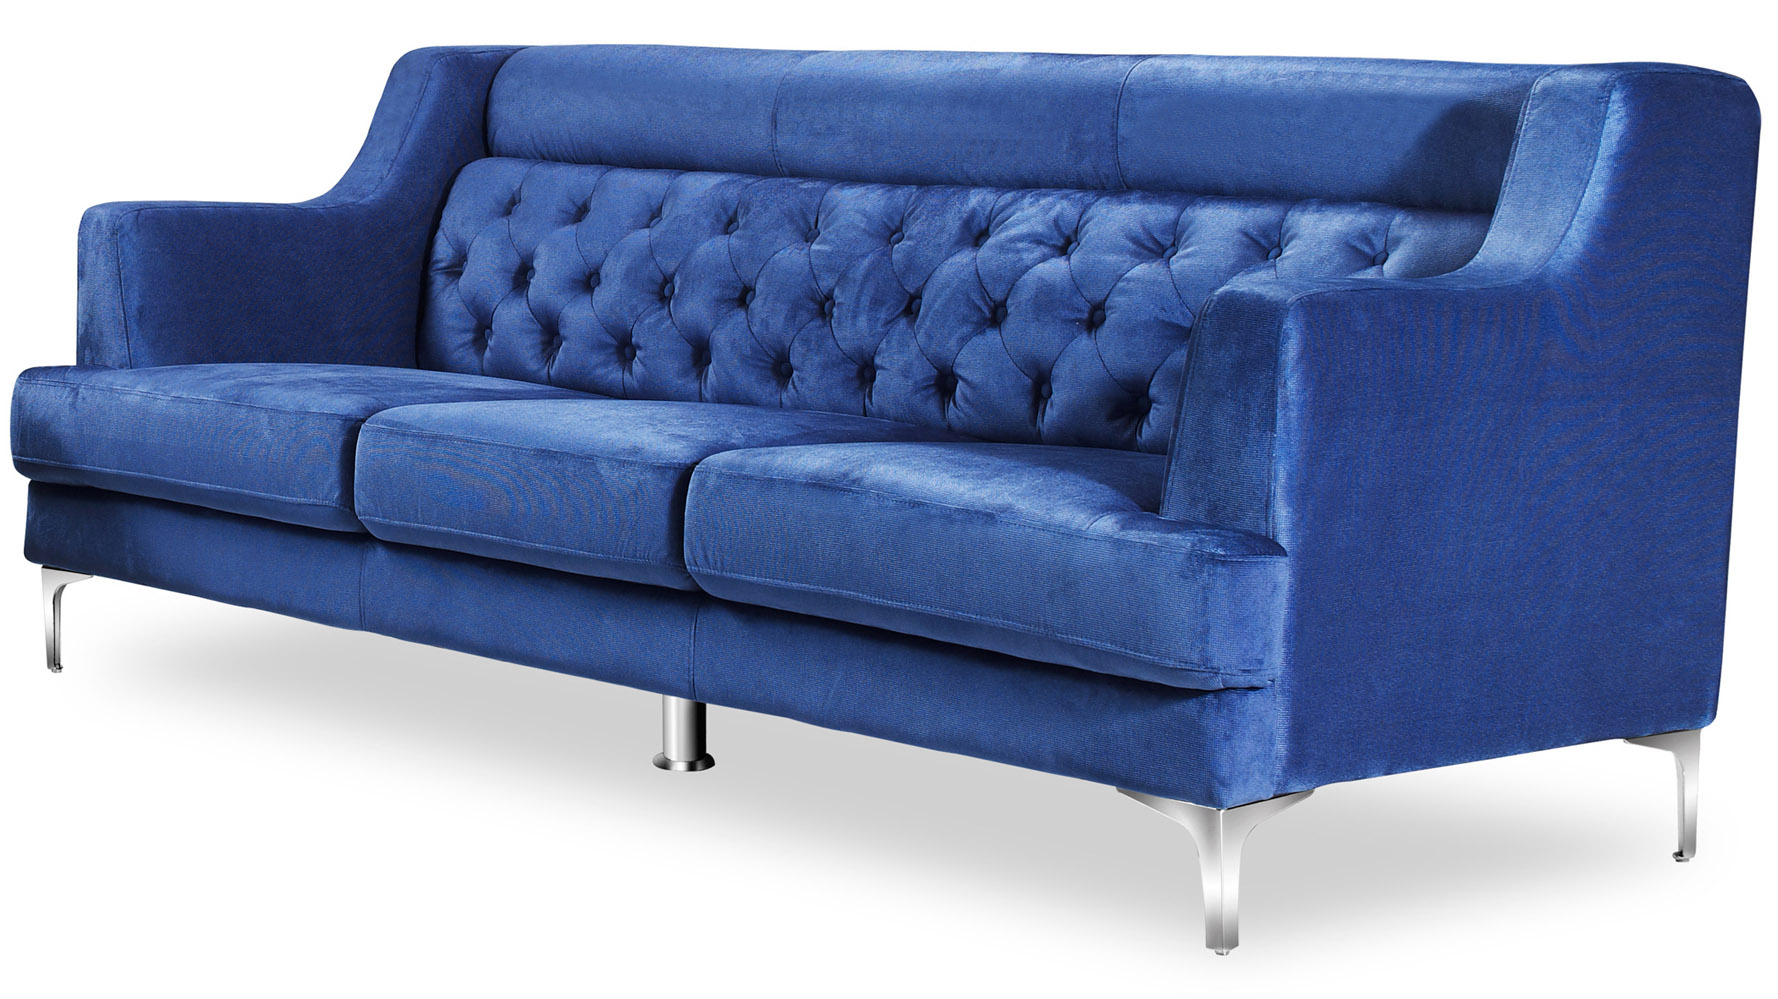 zara fabric tufted sofa with chrome legs navy blue zuri furniture. Black Bedroom Furniture Sets. Home Design Ideas